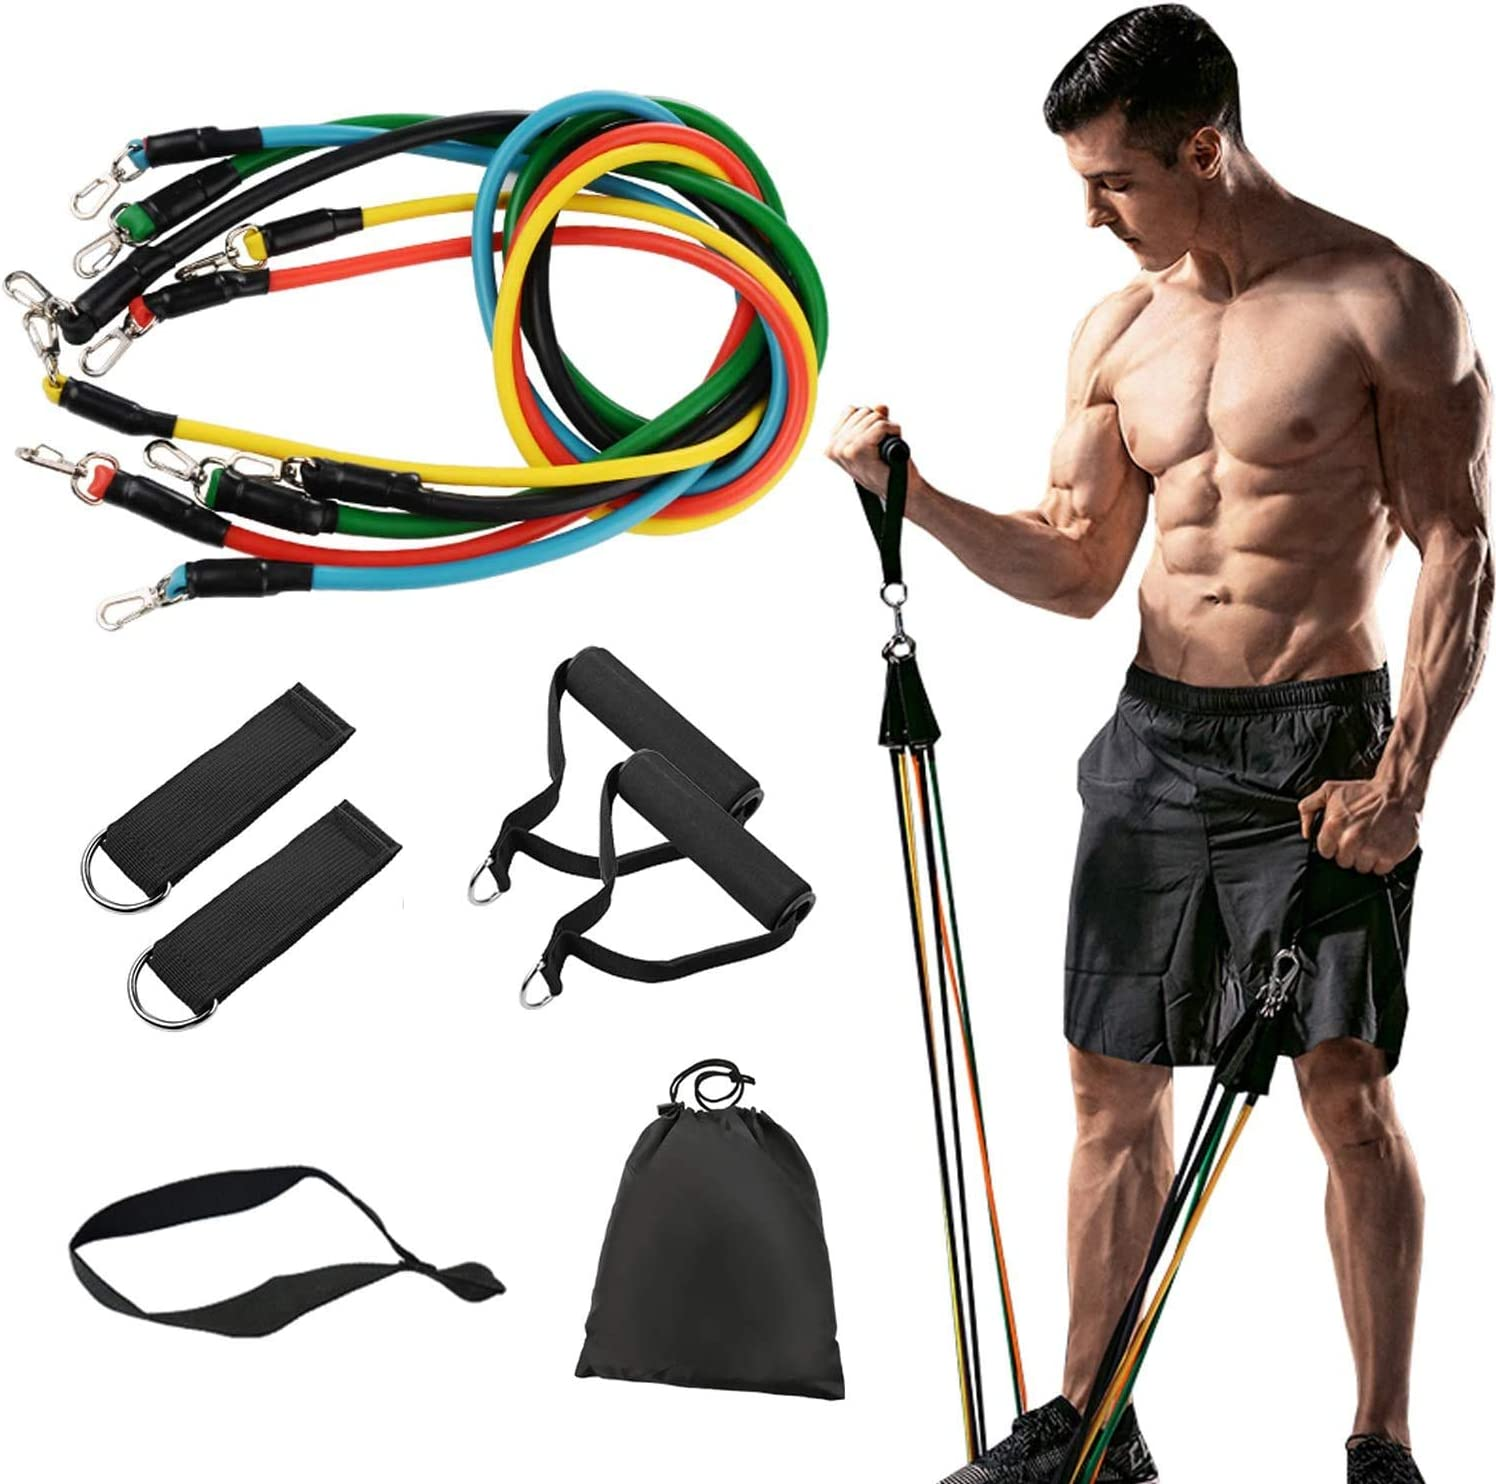 Feeke 1 year warranty 11 Pack Resistance Bands Exercis 5 Set Including Stackable Free shipping New